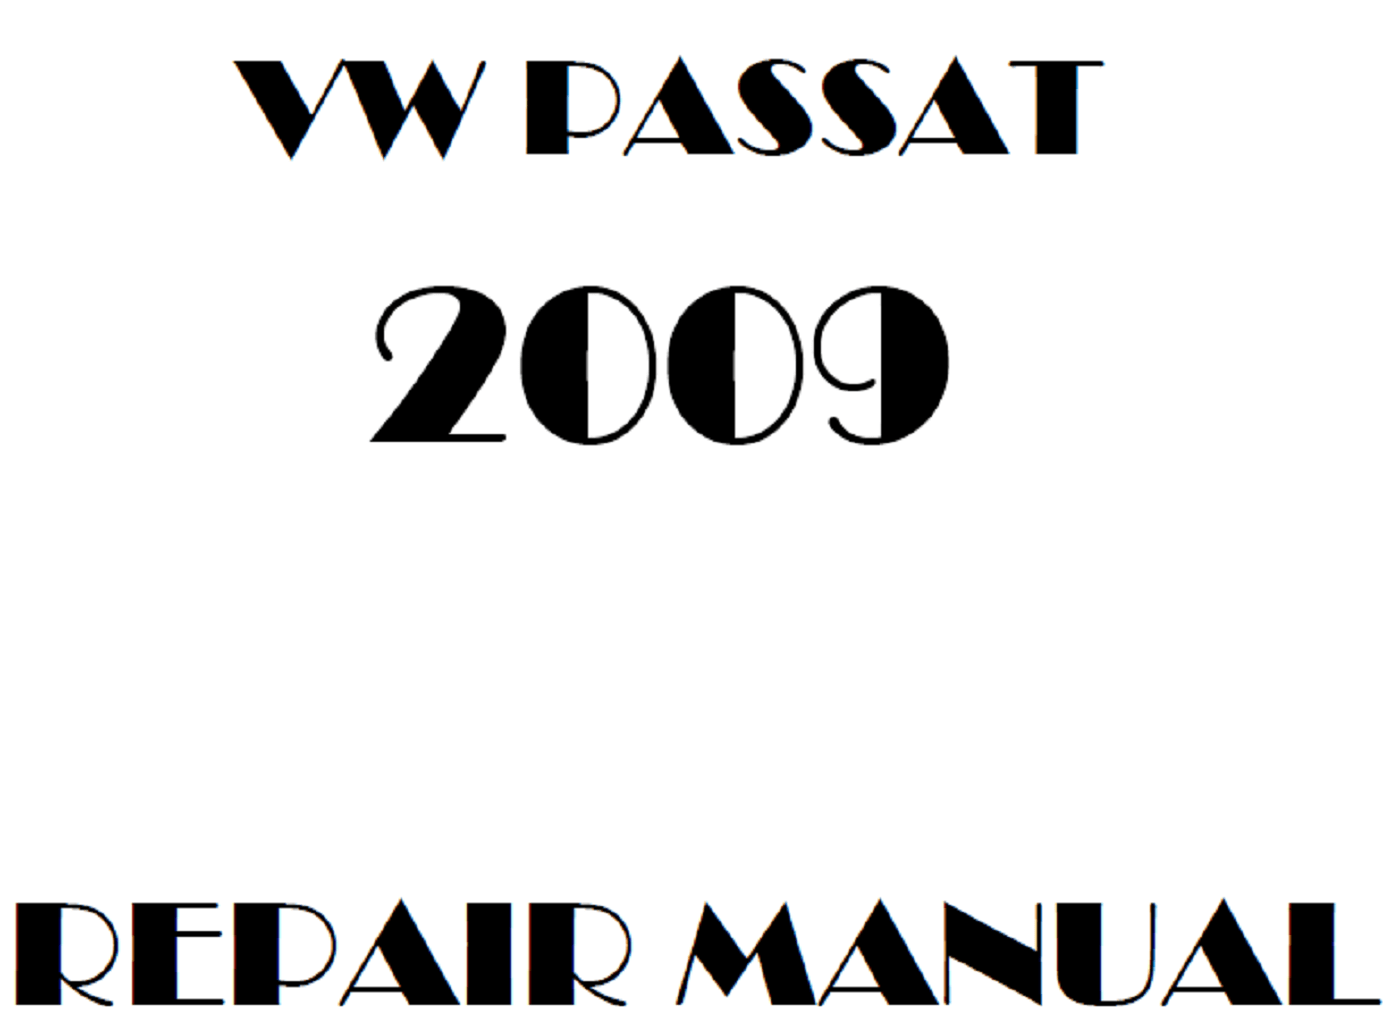 2009 Volkswagen Passat repair manual